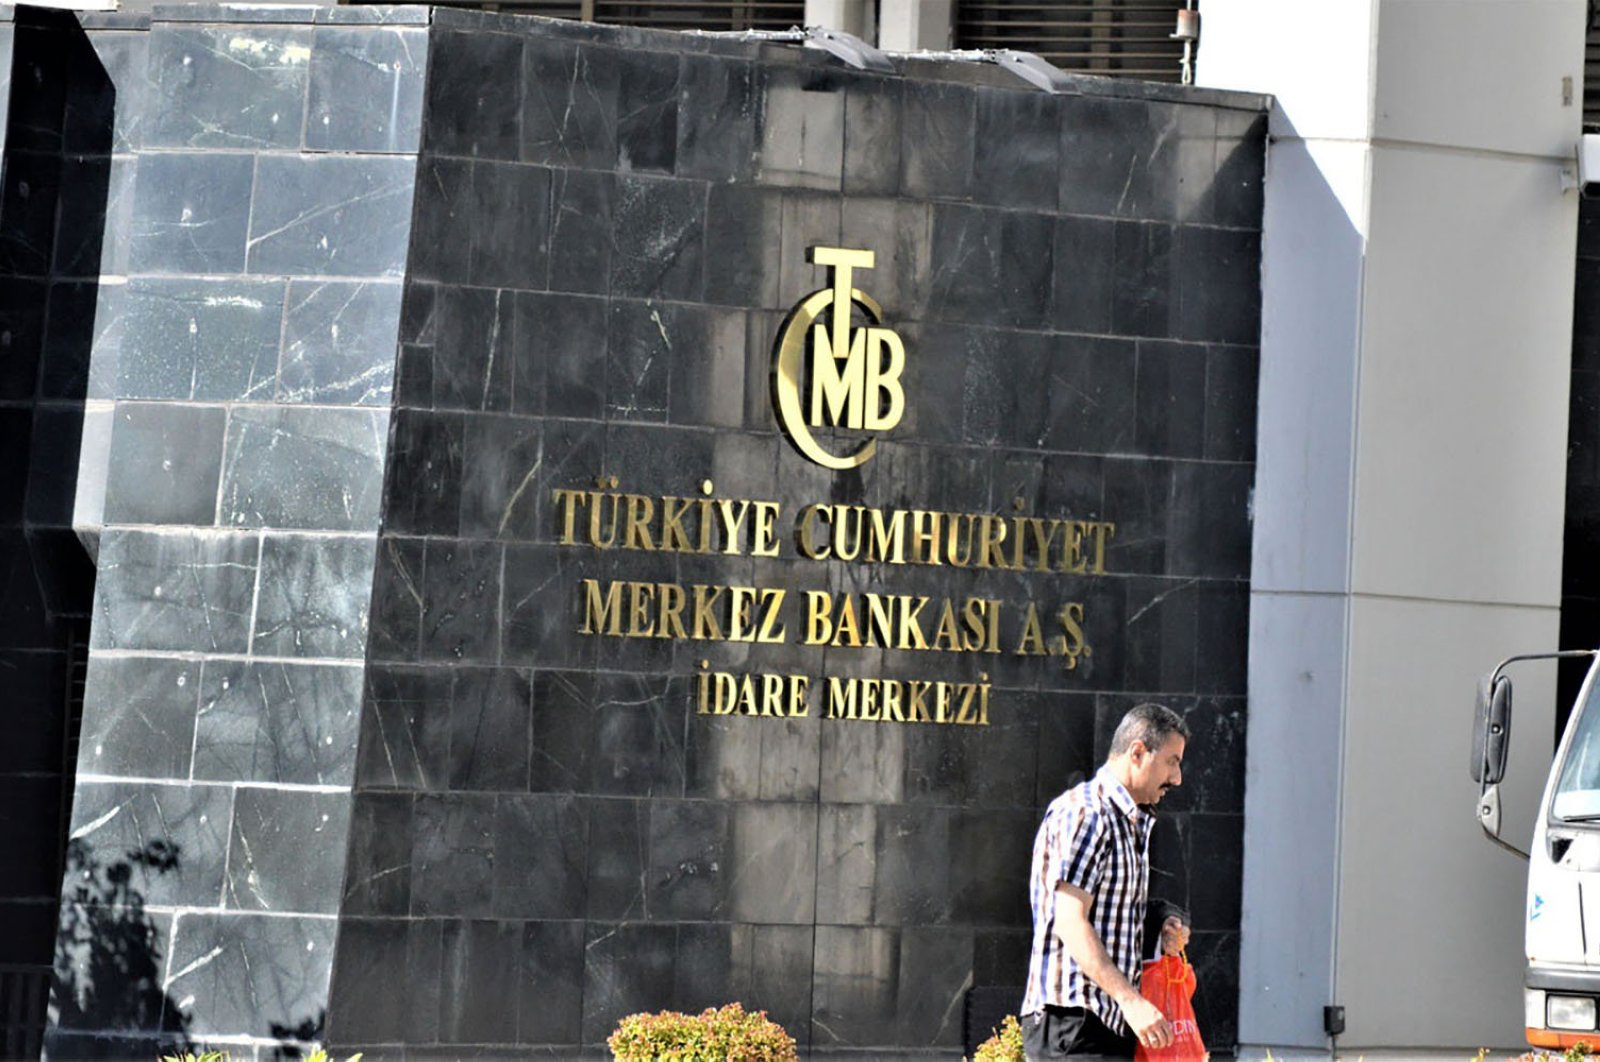 The Central Bank of the Republic of Turkey's headquarters is seen in Ankara, Turkey. (File Photo)